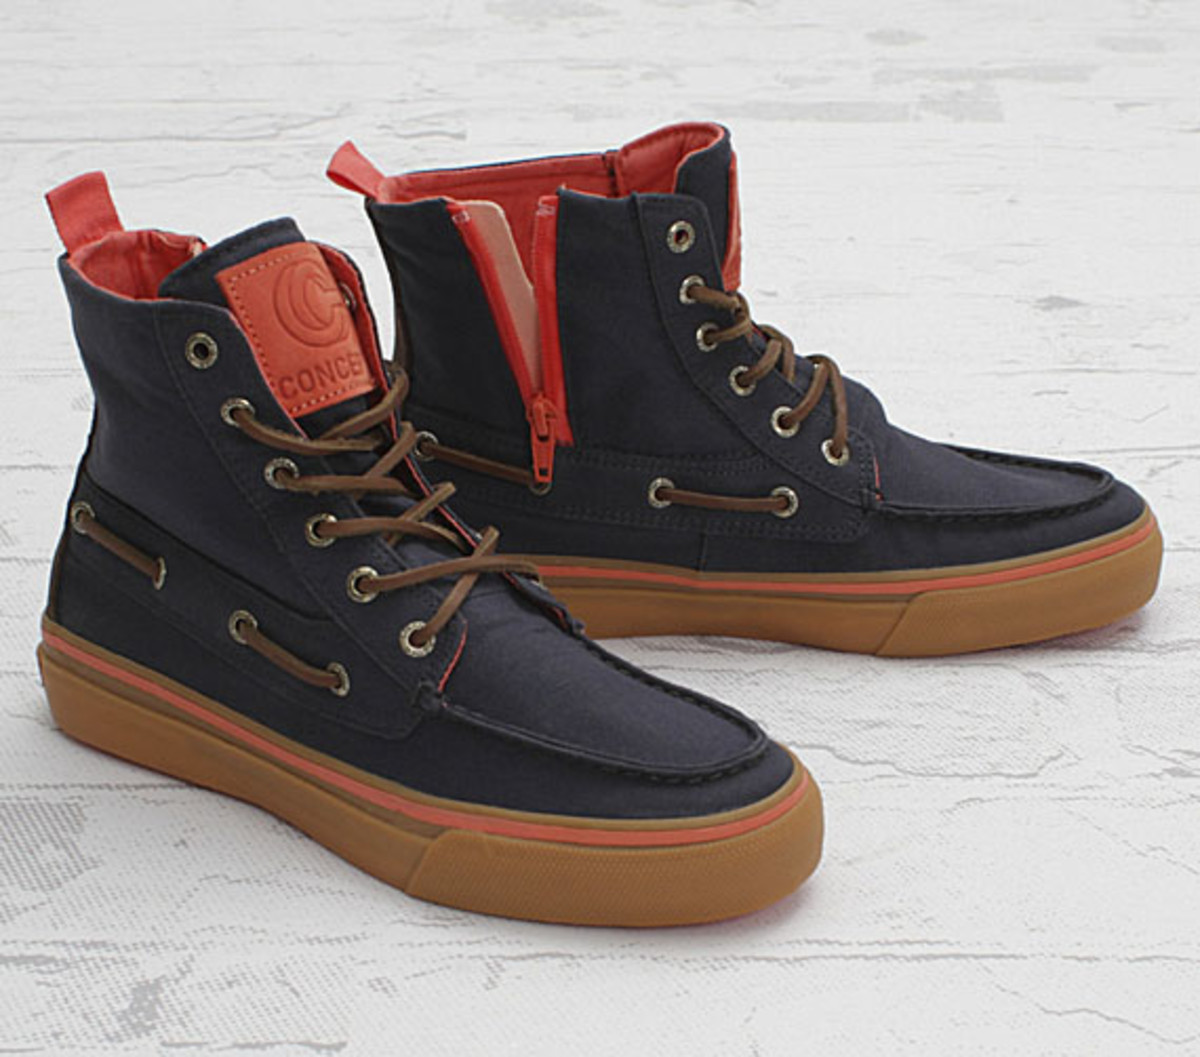 concepts-sperry-top-sider-bahama-boot-fall-2012-20